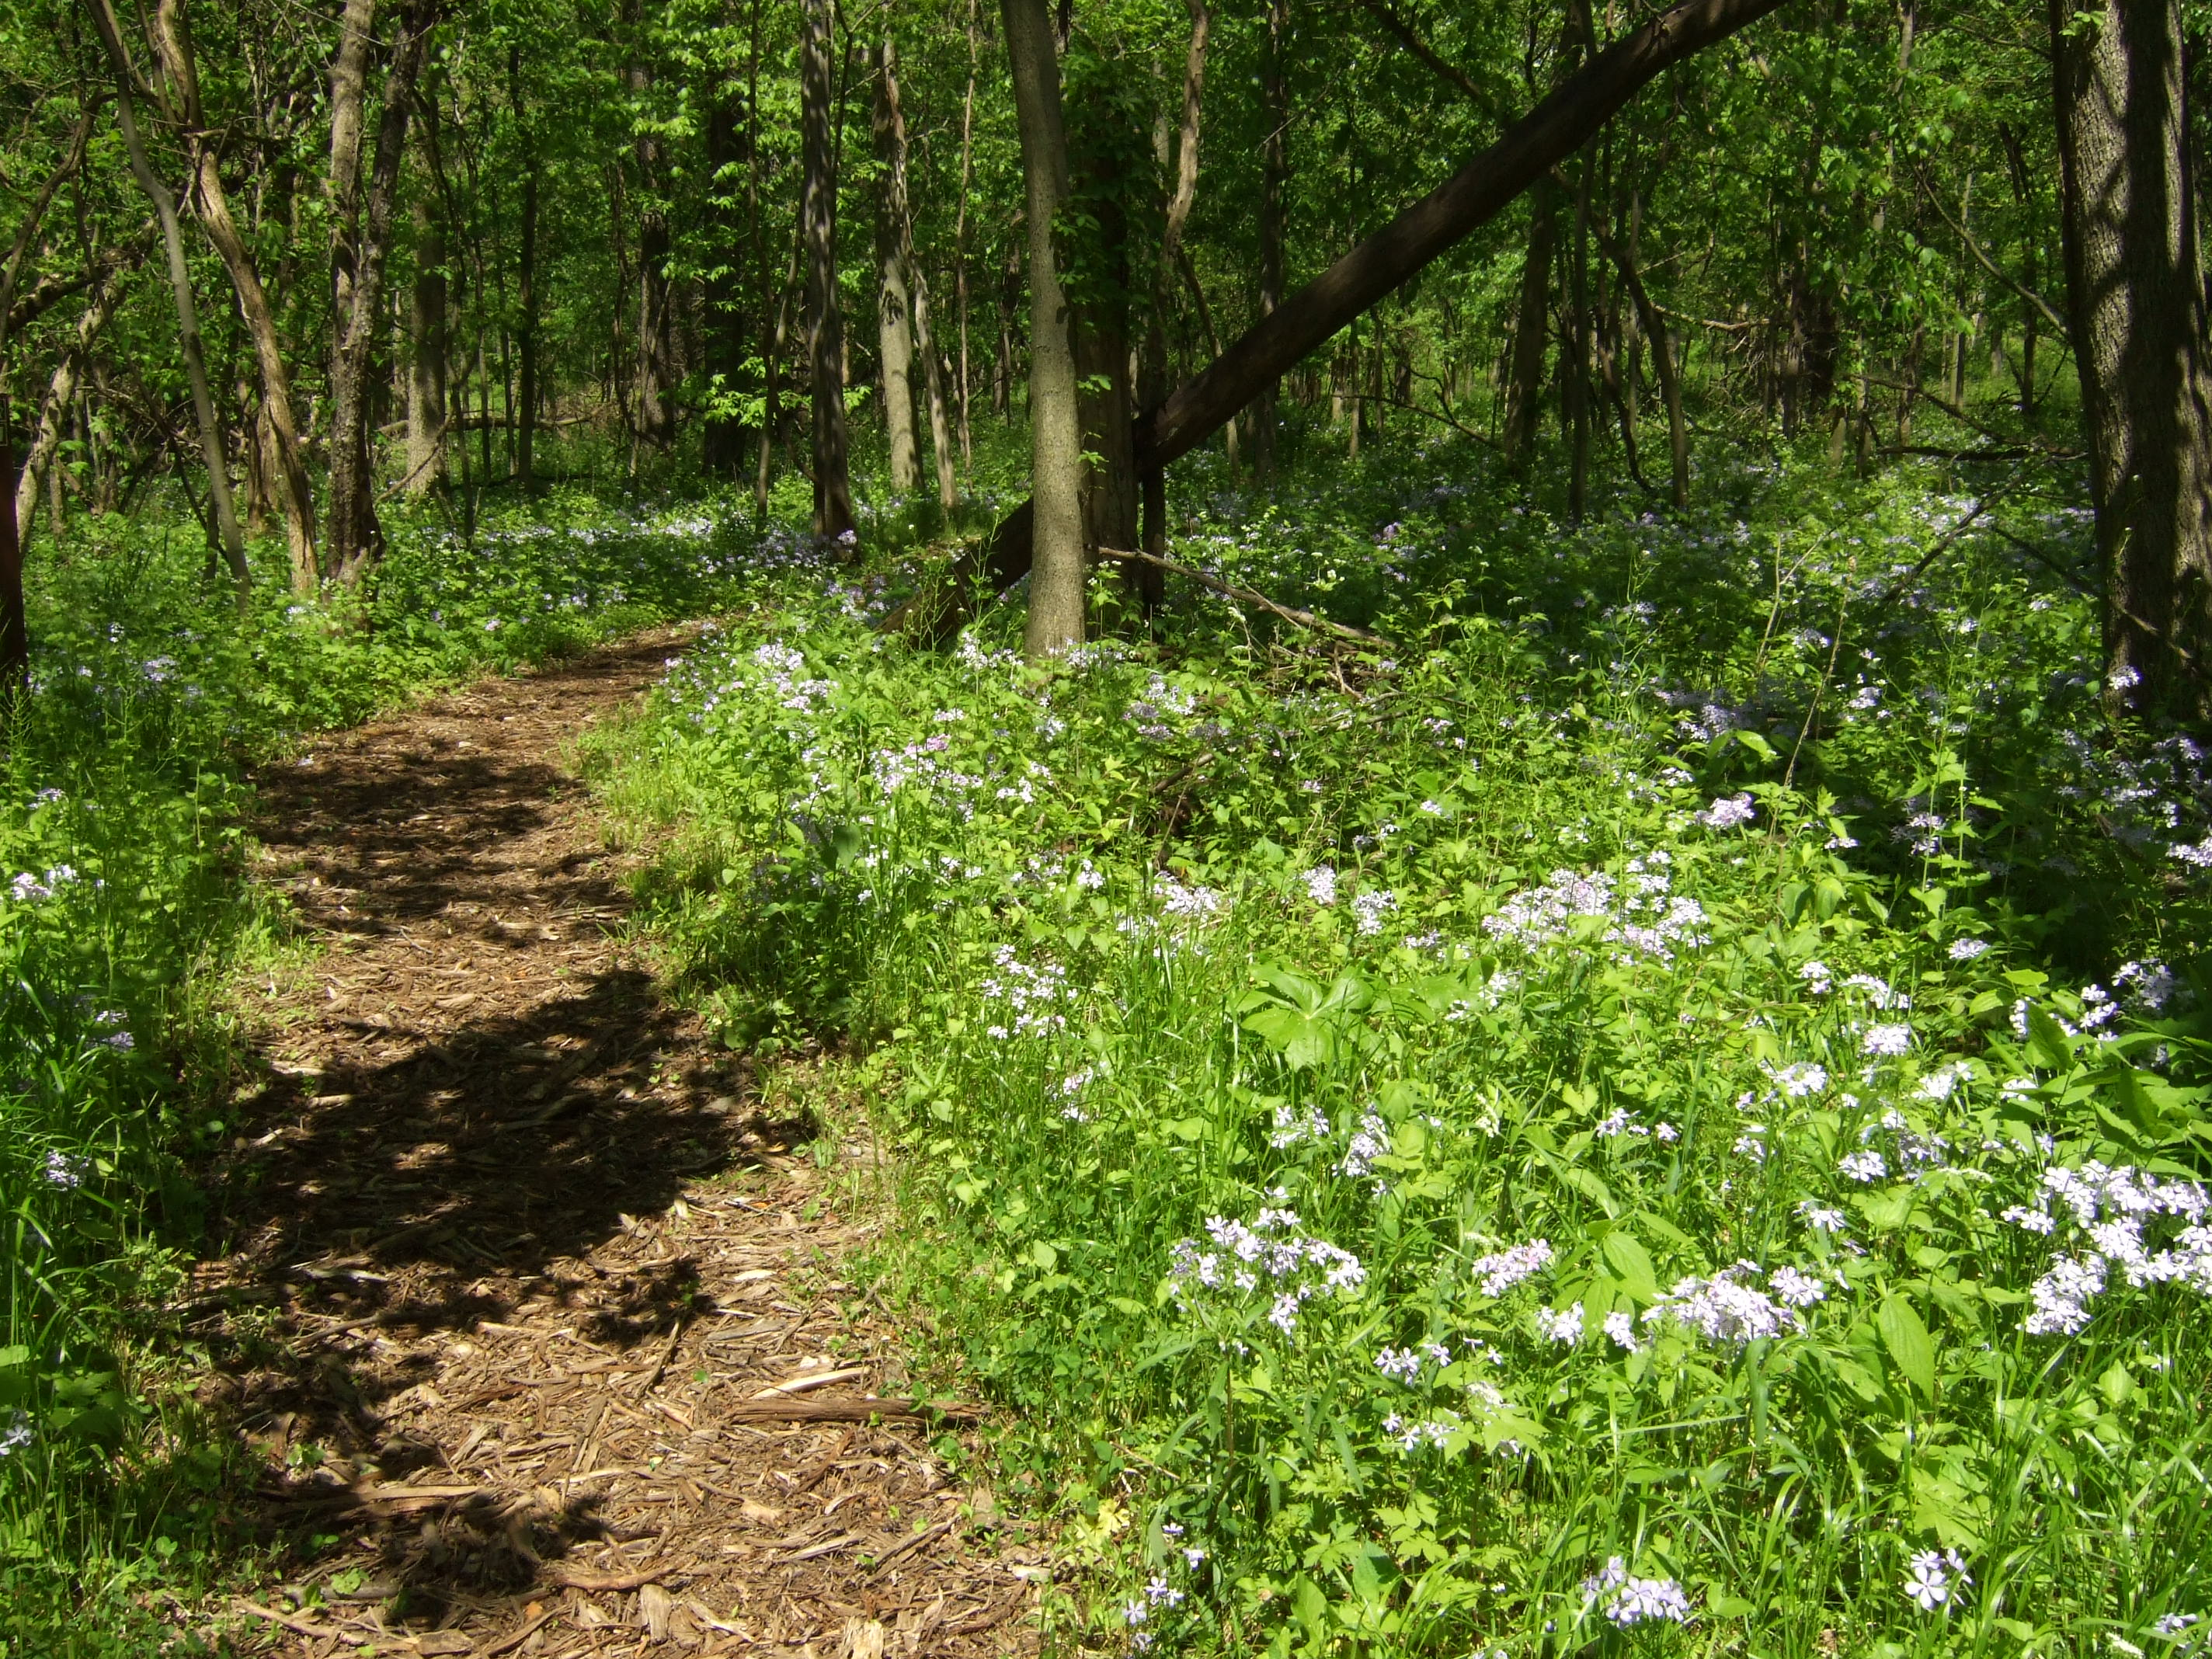 Prairie Creek Woods